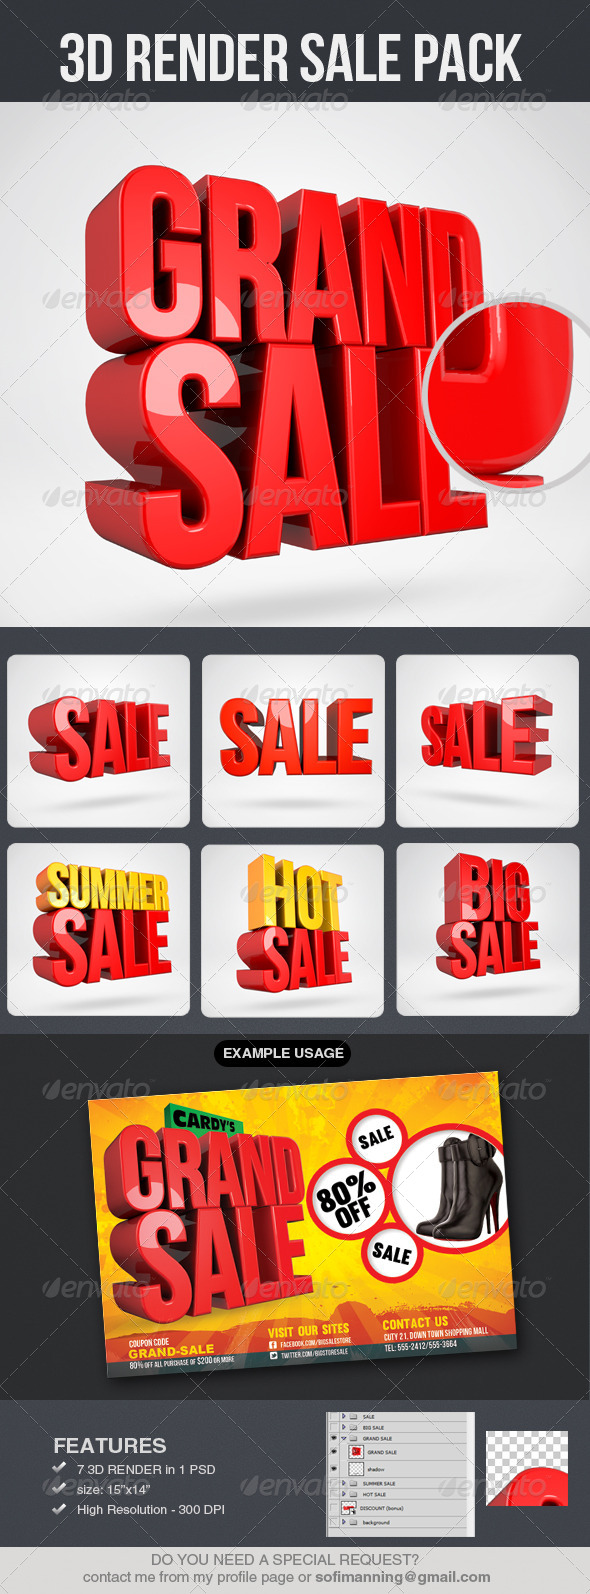 GraphicRiver 3D Render Sale Pack 4971412